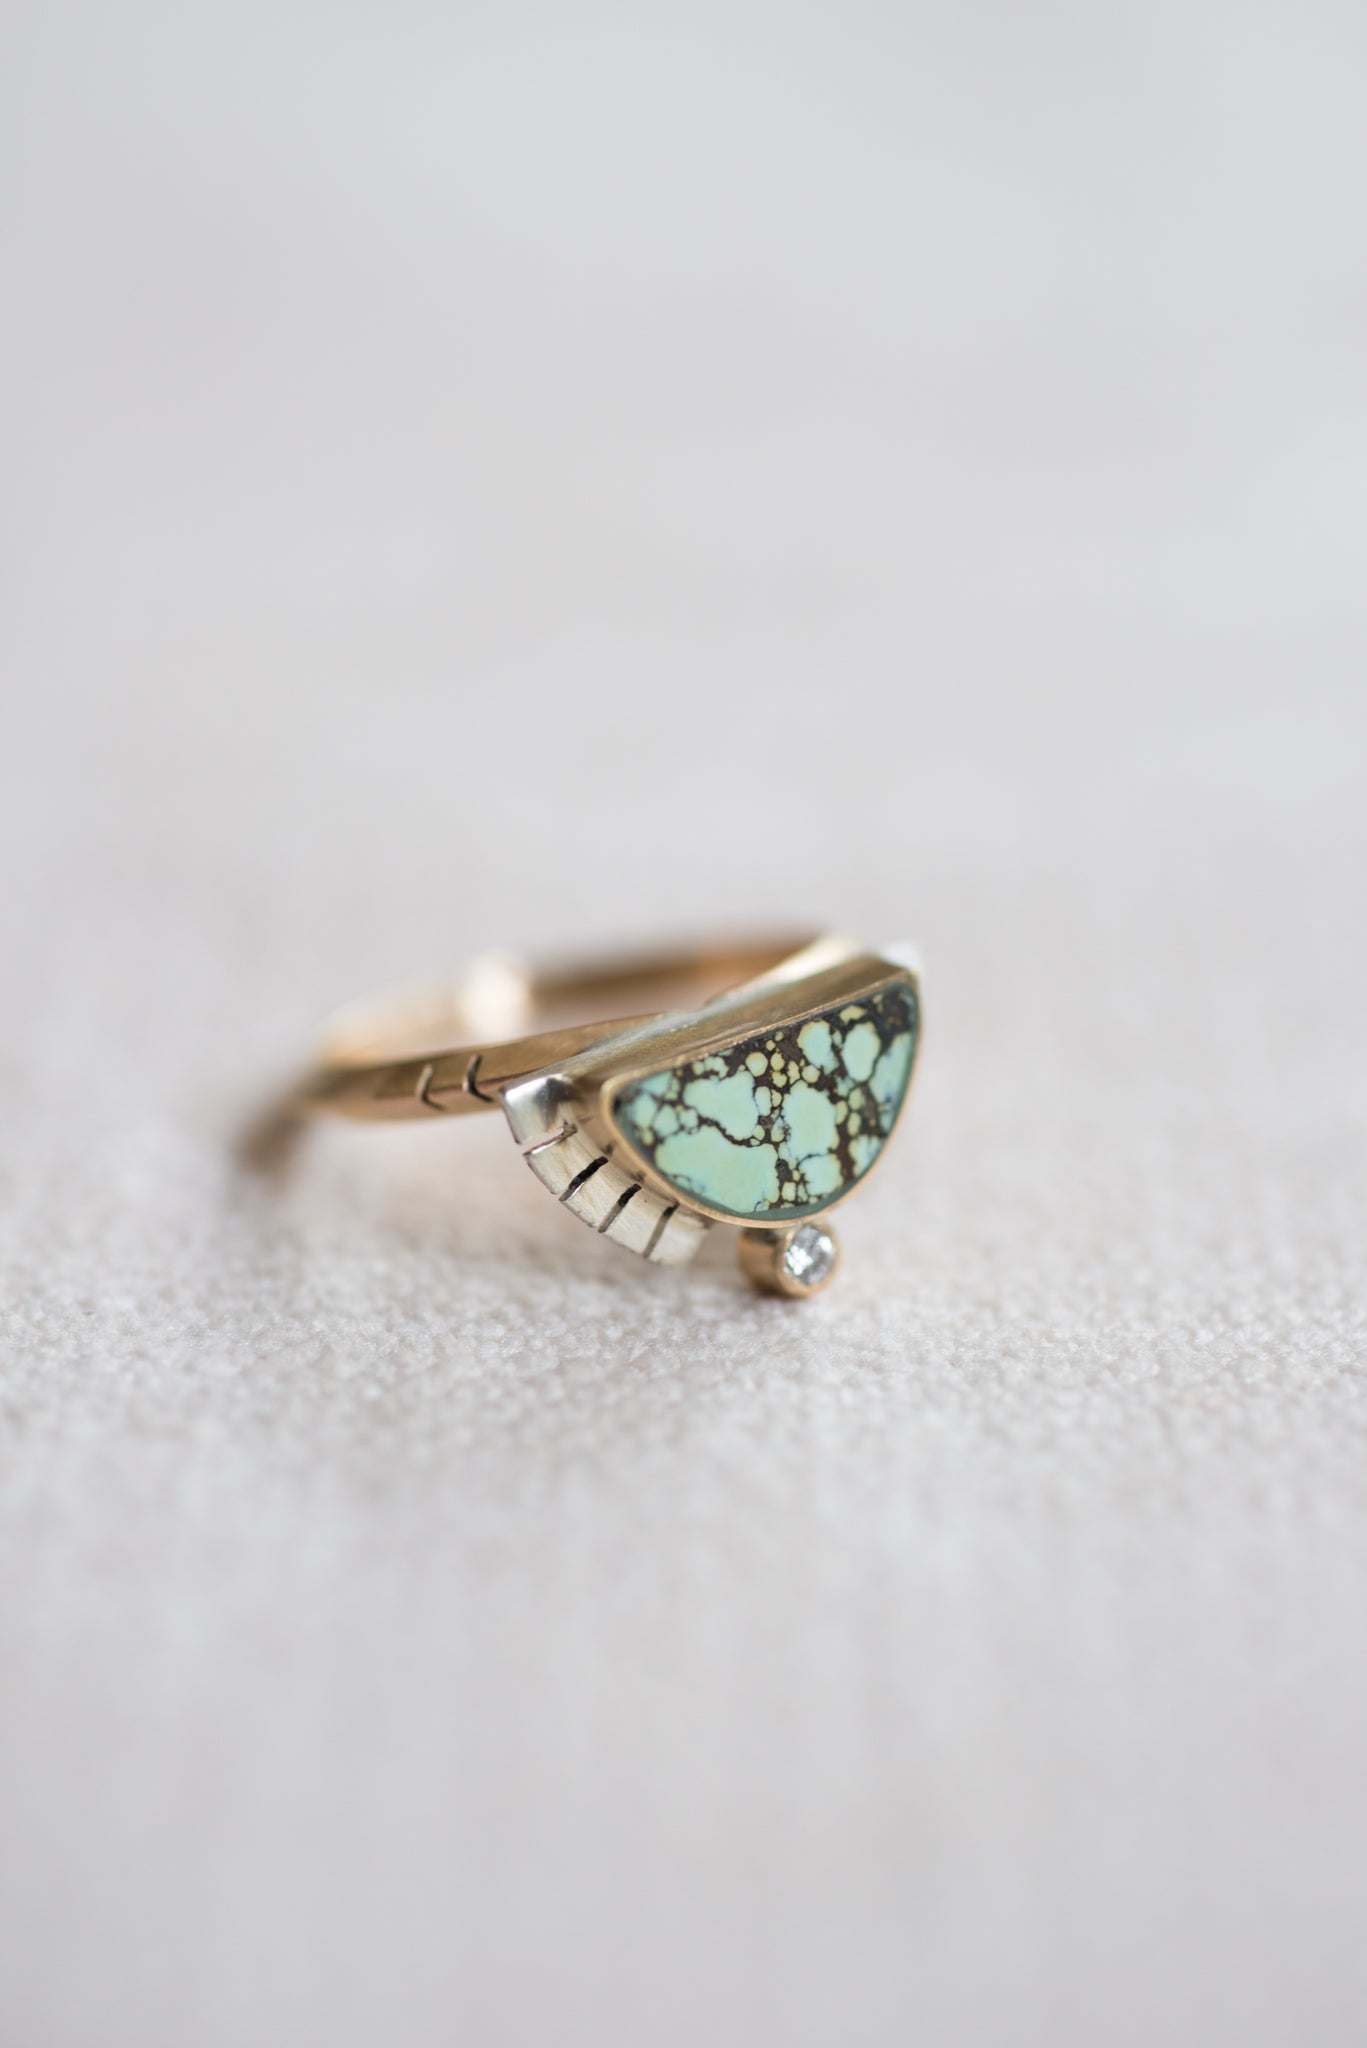 Young In the Mountains :: Half Sol Ring SS/14K Diamonds Peacock Turq. Size 7